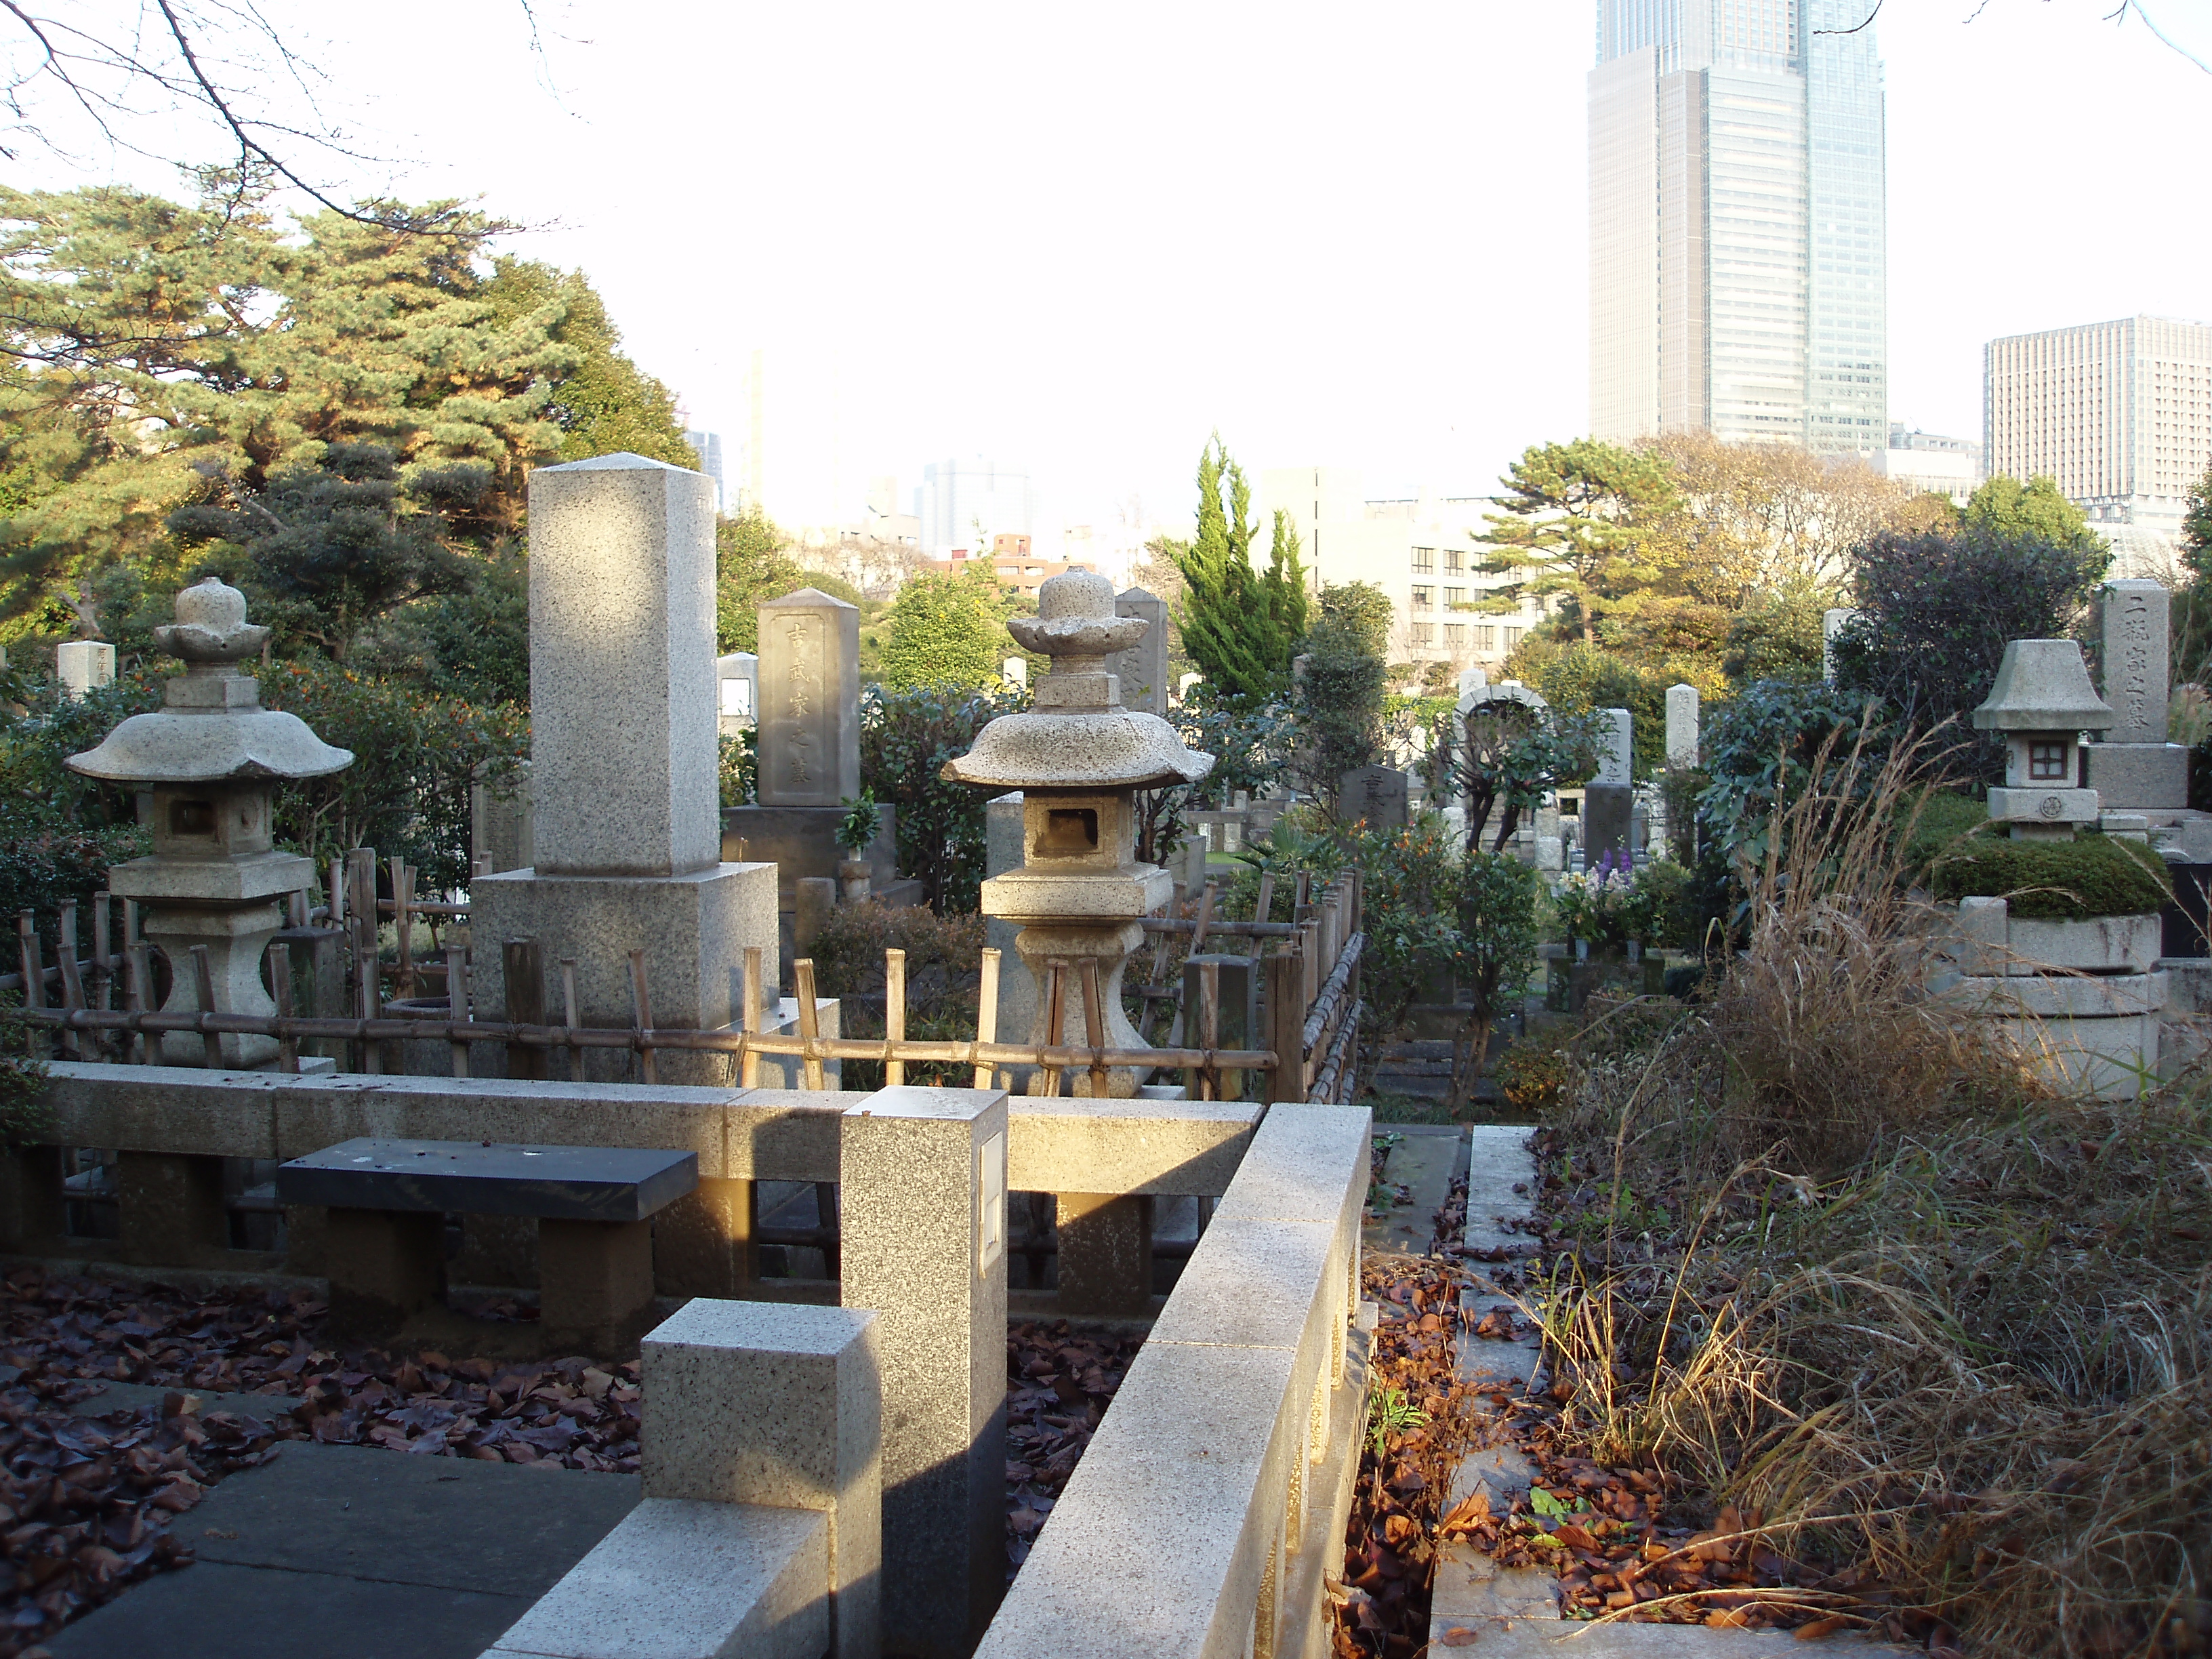 graves in a tokyo cemetery